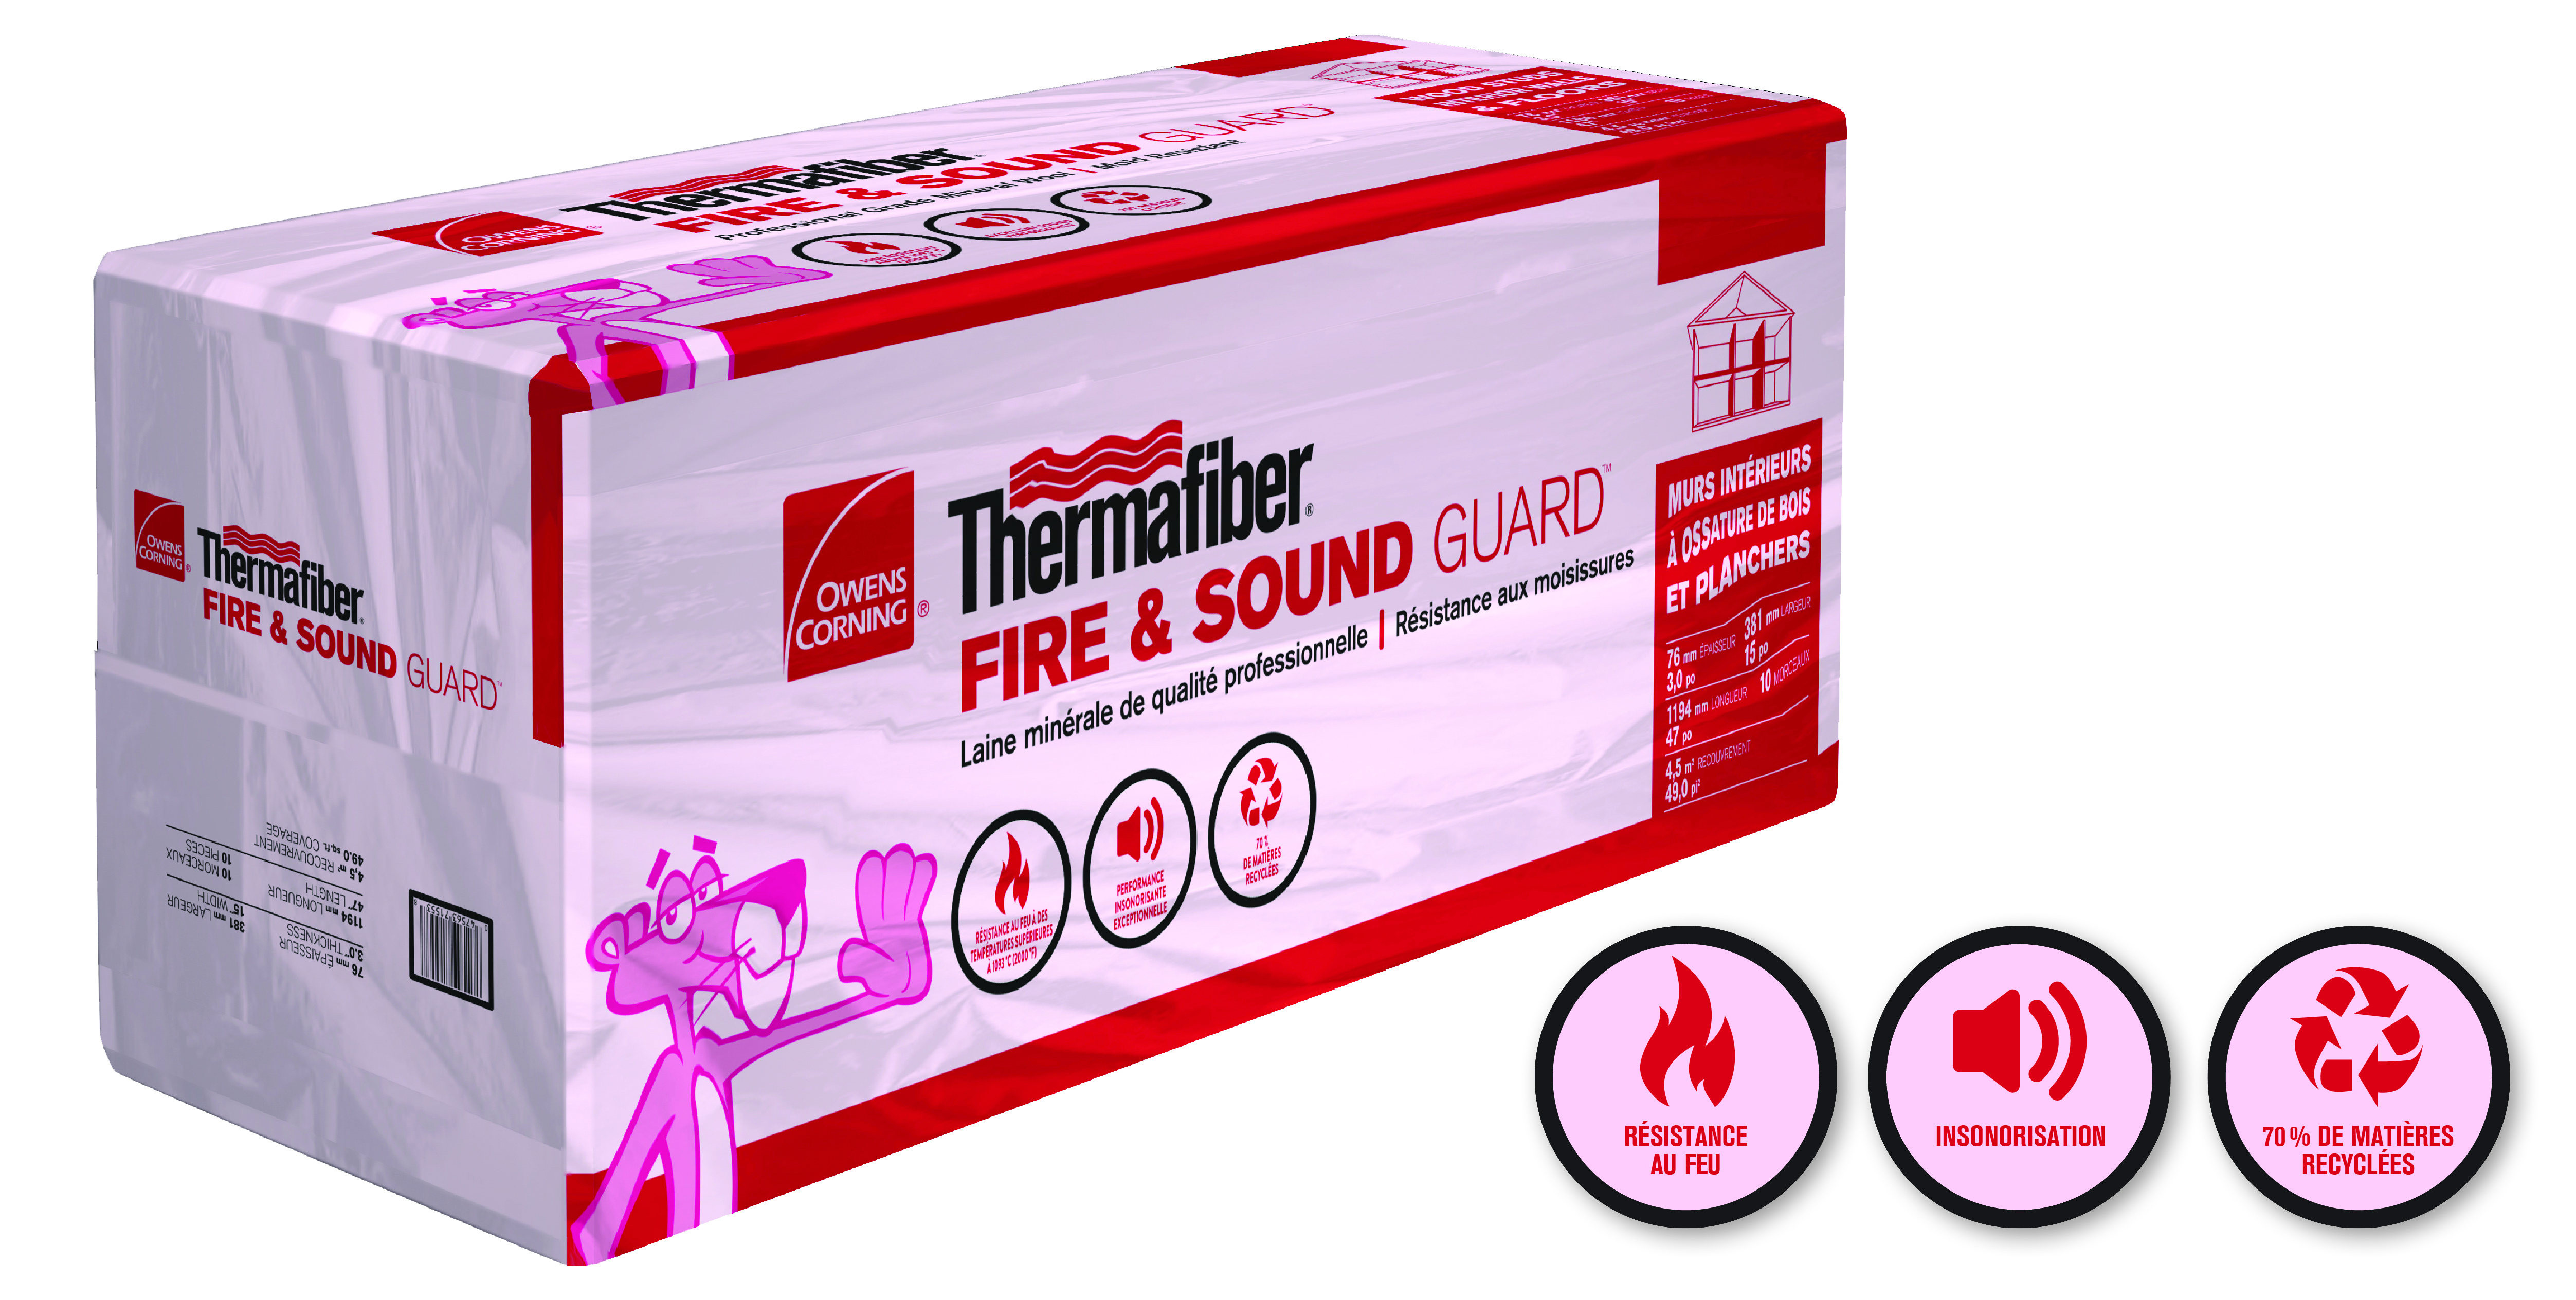 Fire & Sound Guard Product Image FR